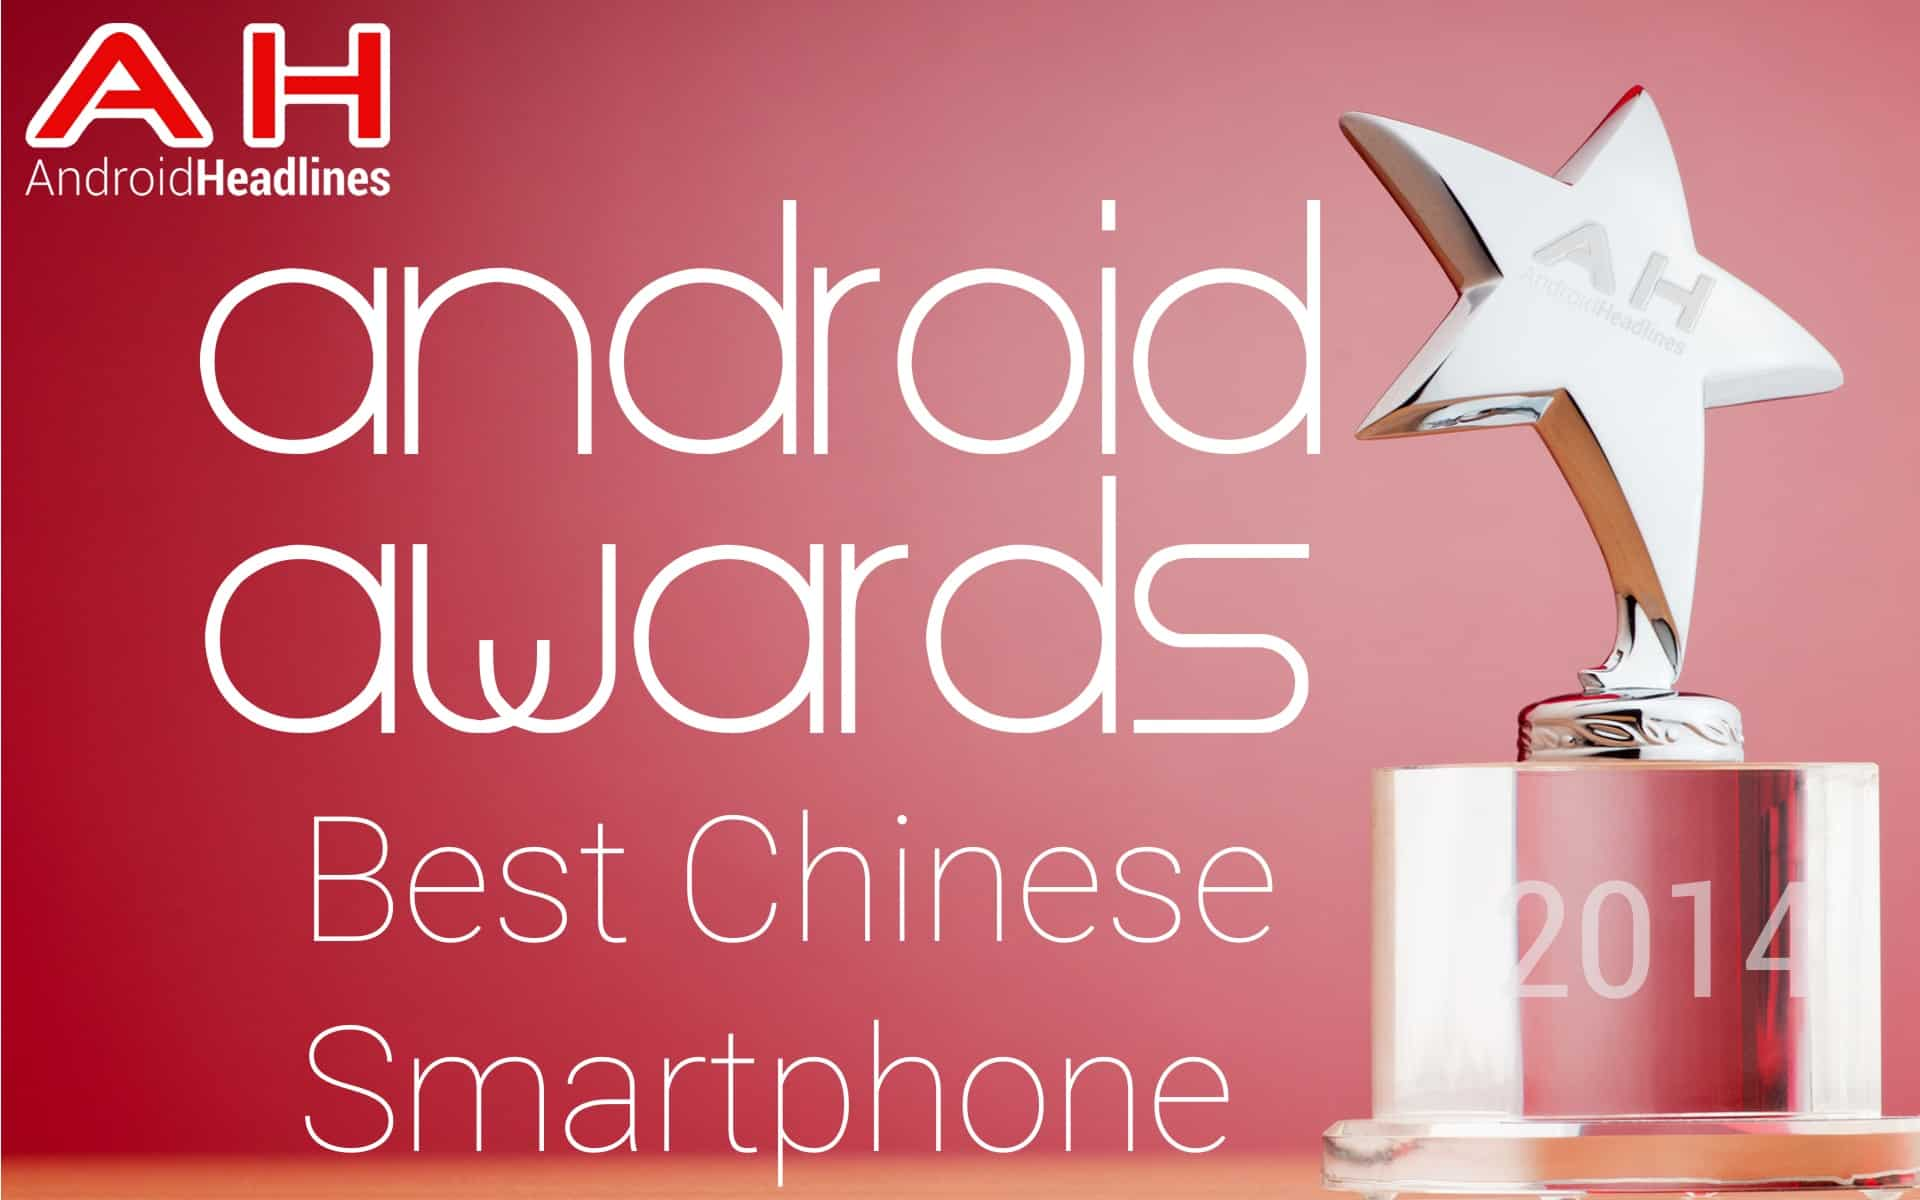 AH Awards 2014 Best Chinese Android Smartphone of the year